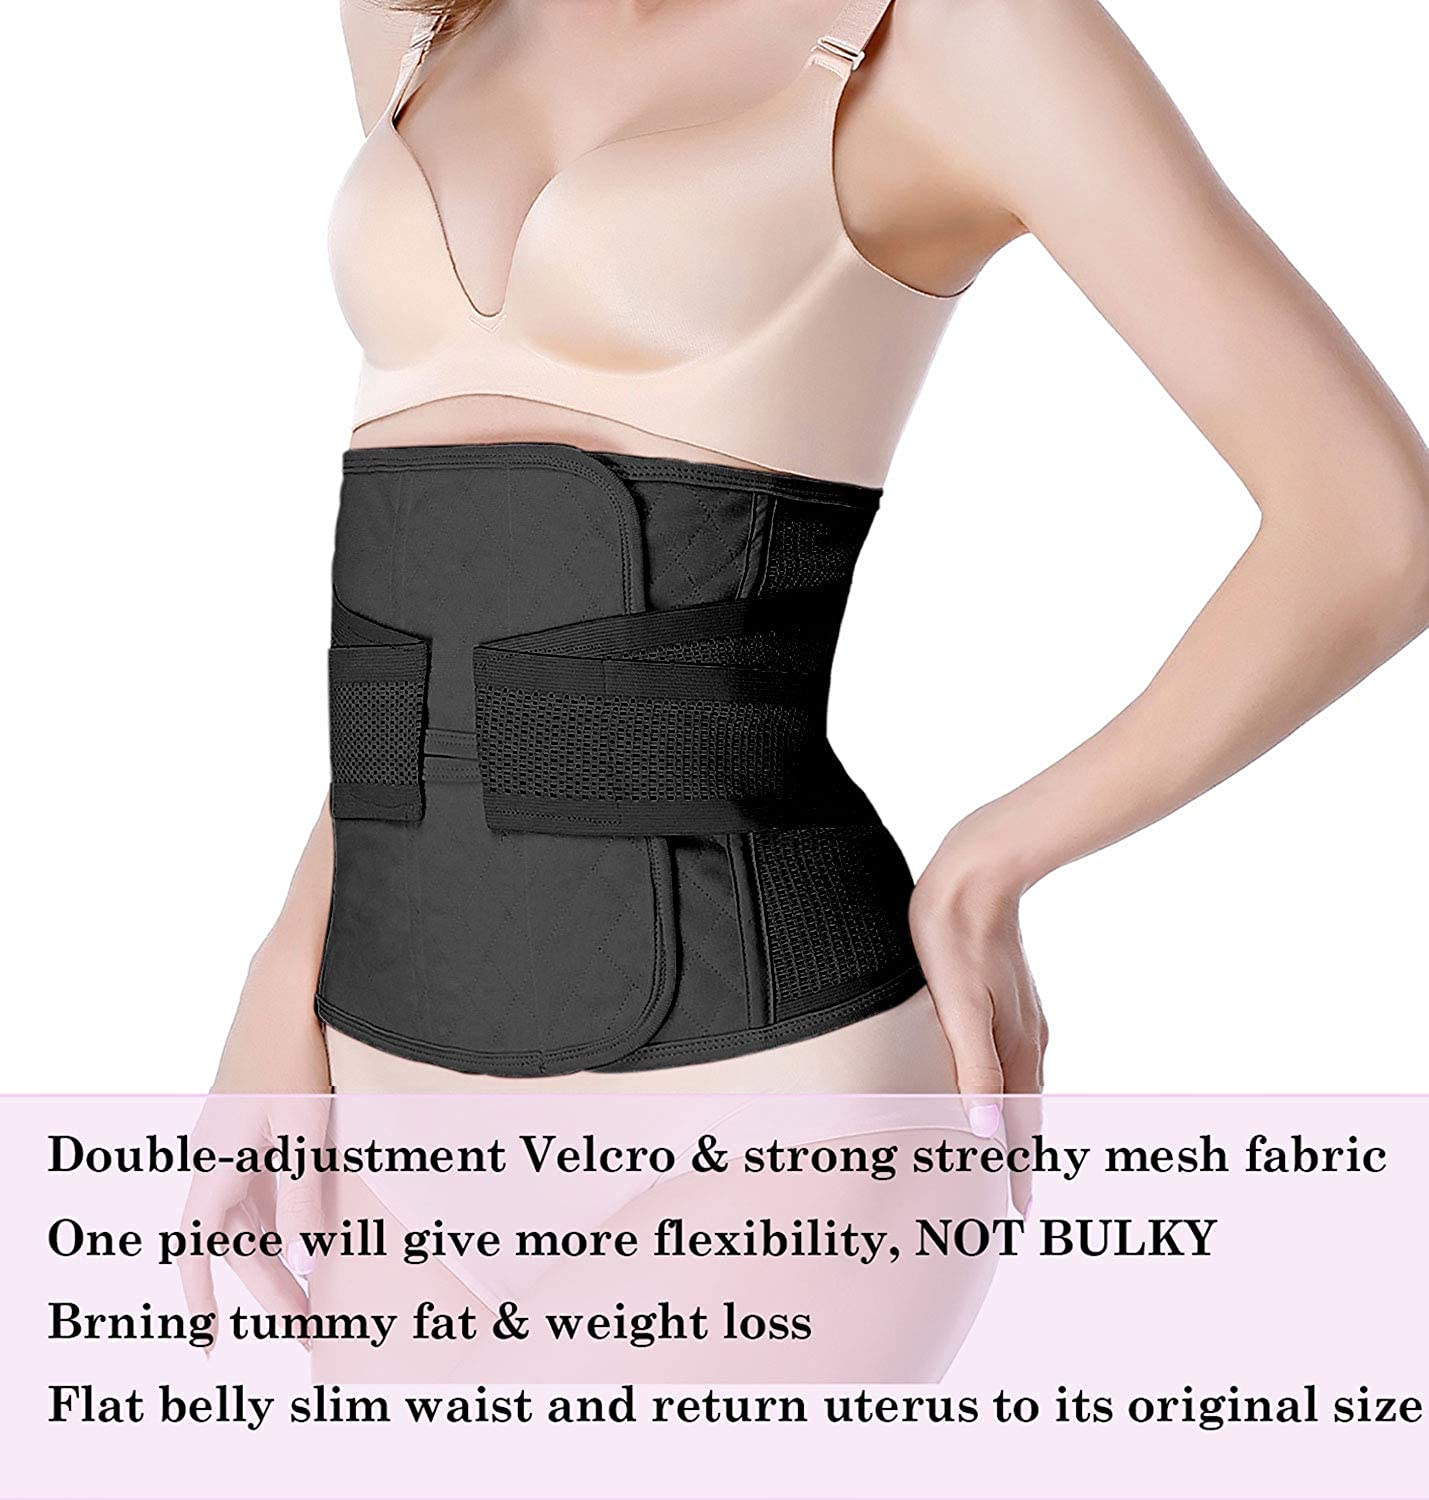 Moolida Postpartum Belly Wrap C Section Recovery Belt Belly Band Binder Back Support Waist Shapewear 2019 Upgraded Small Black